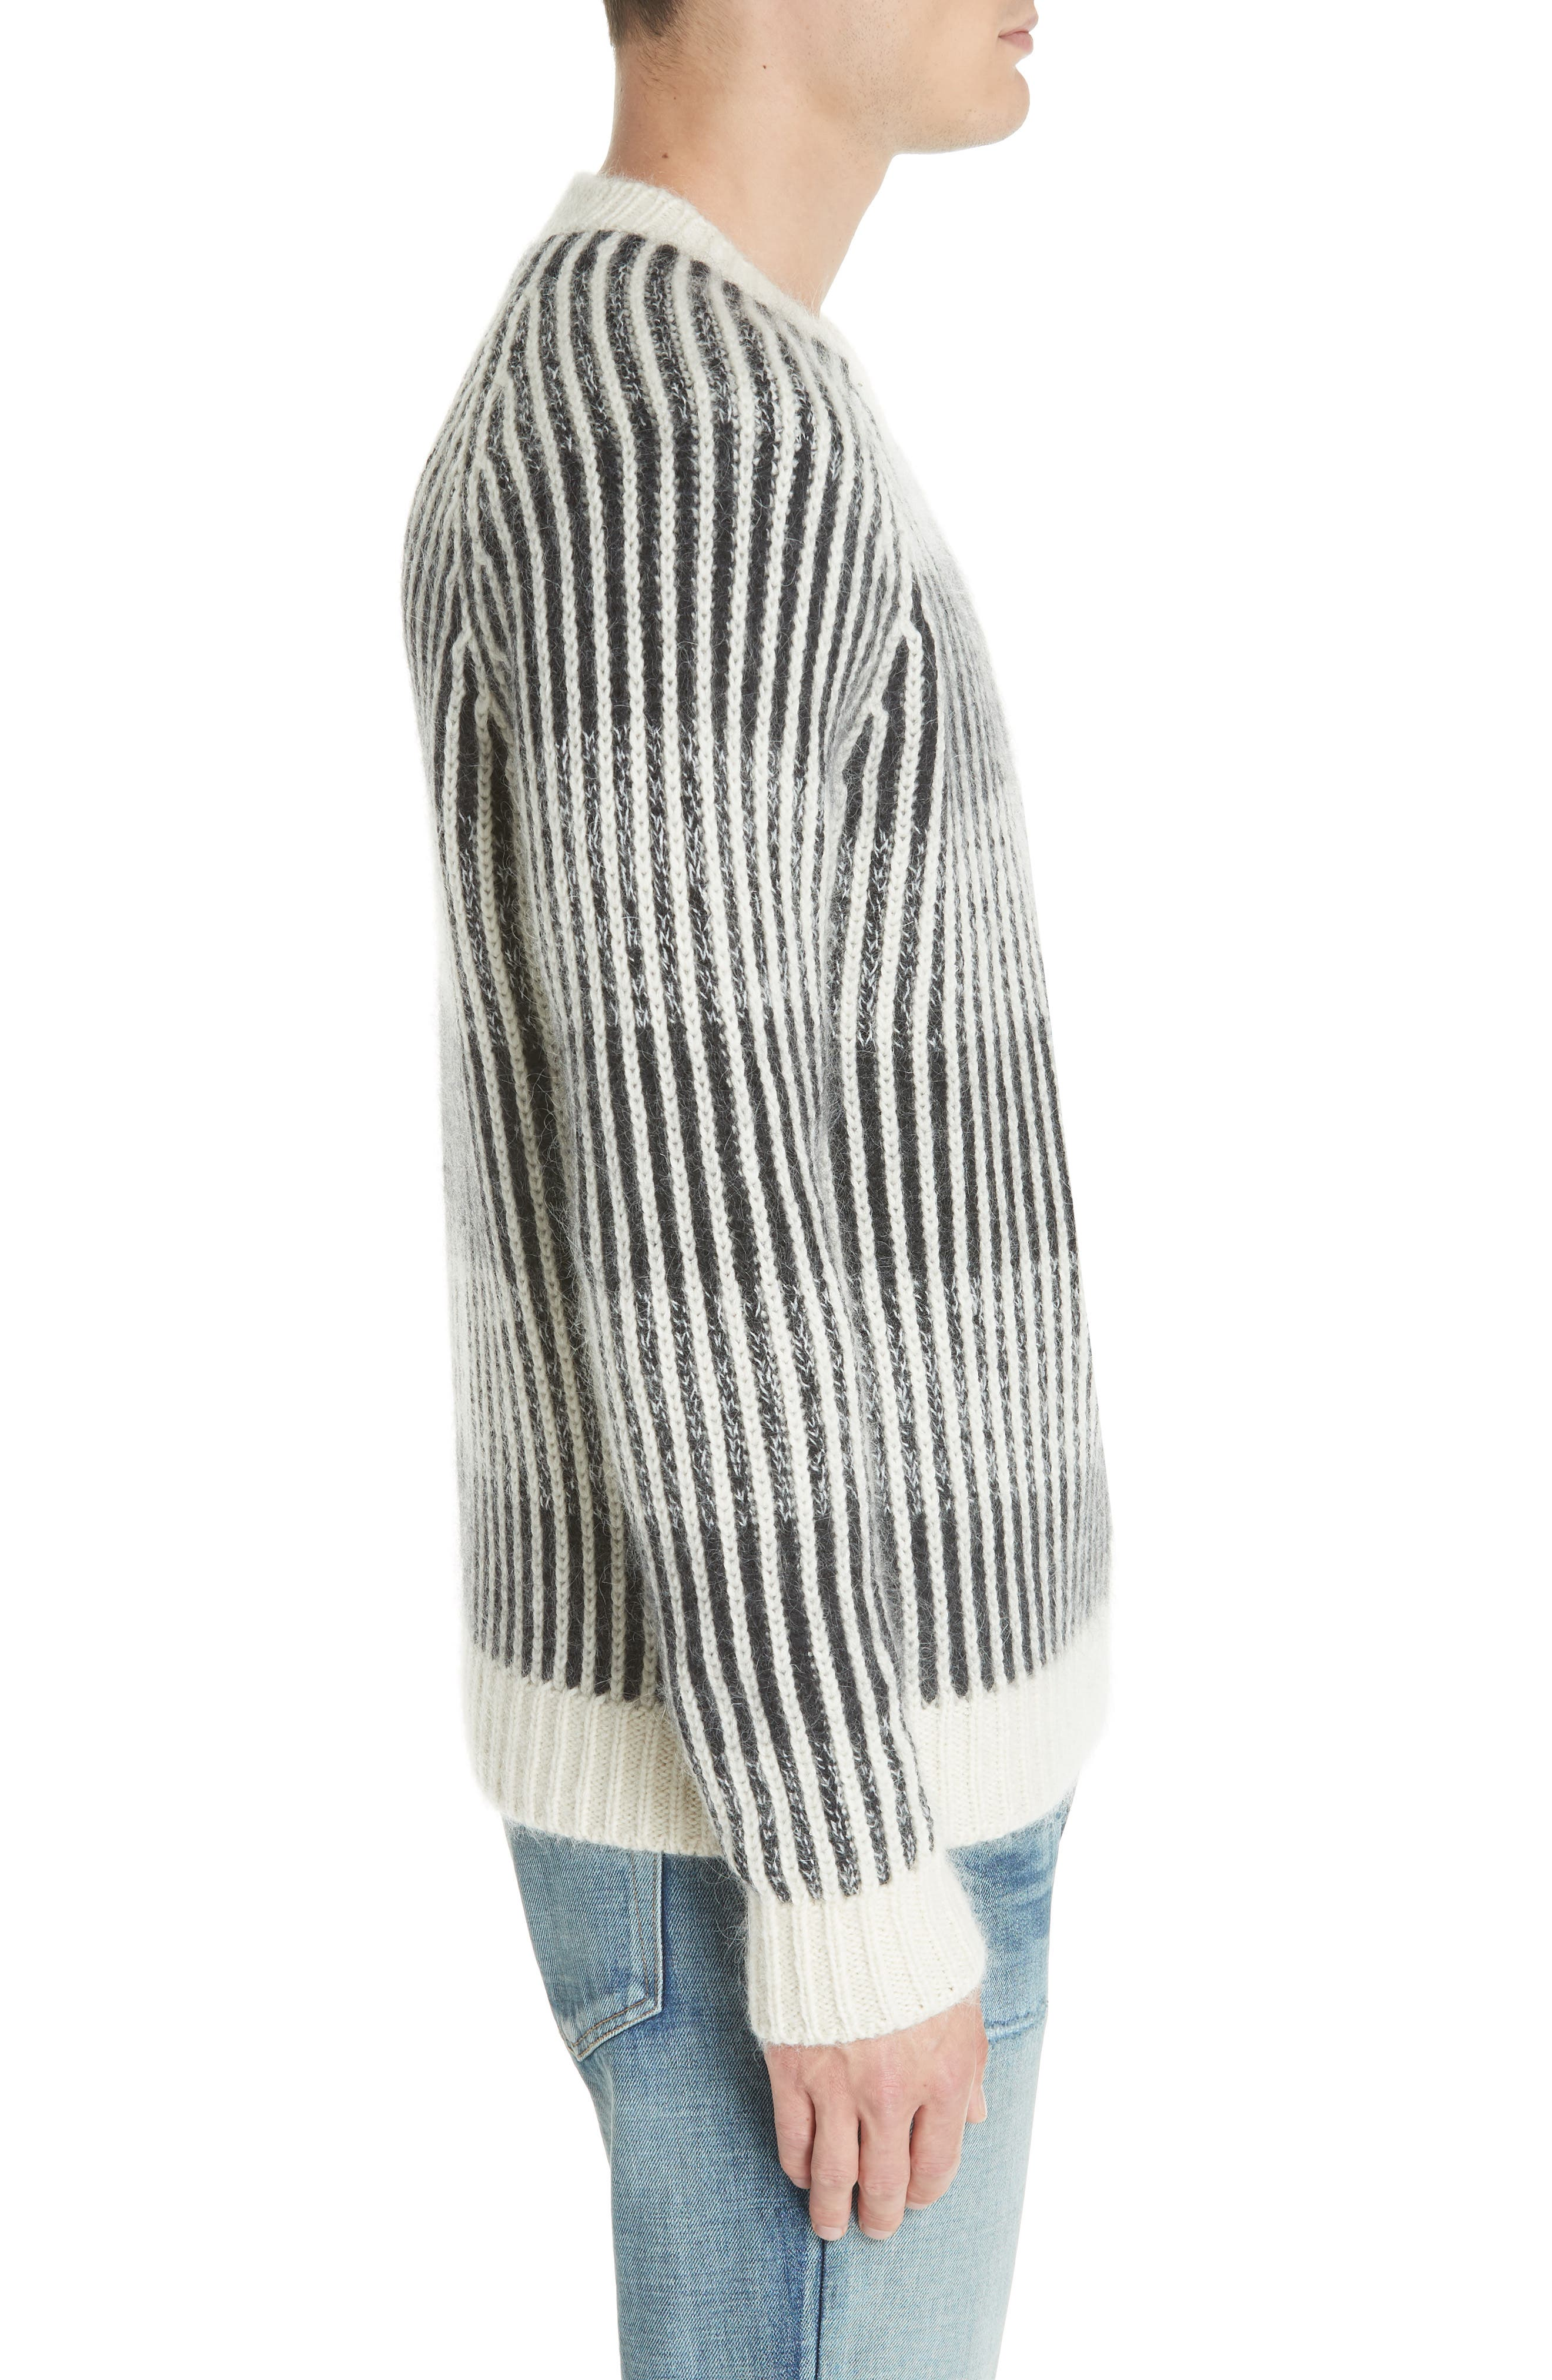 SAINT LAURENT,                             Contrast Rib Wool & Alpaca Blend Sweater,                             Alternate thumbnail 3, color,                             134